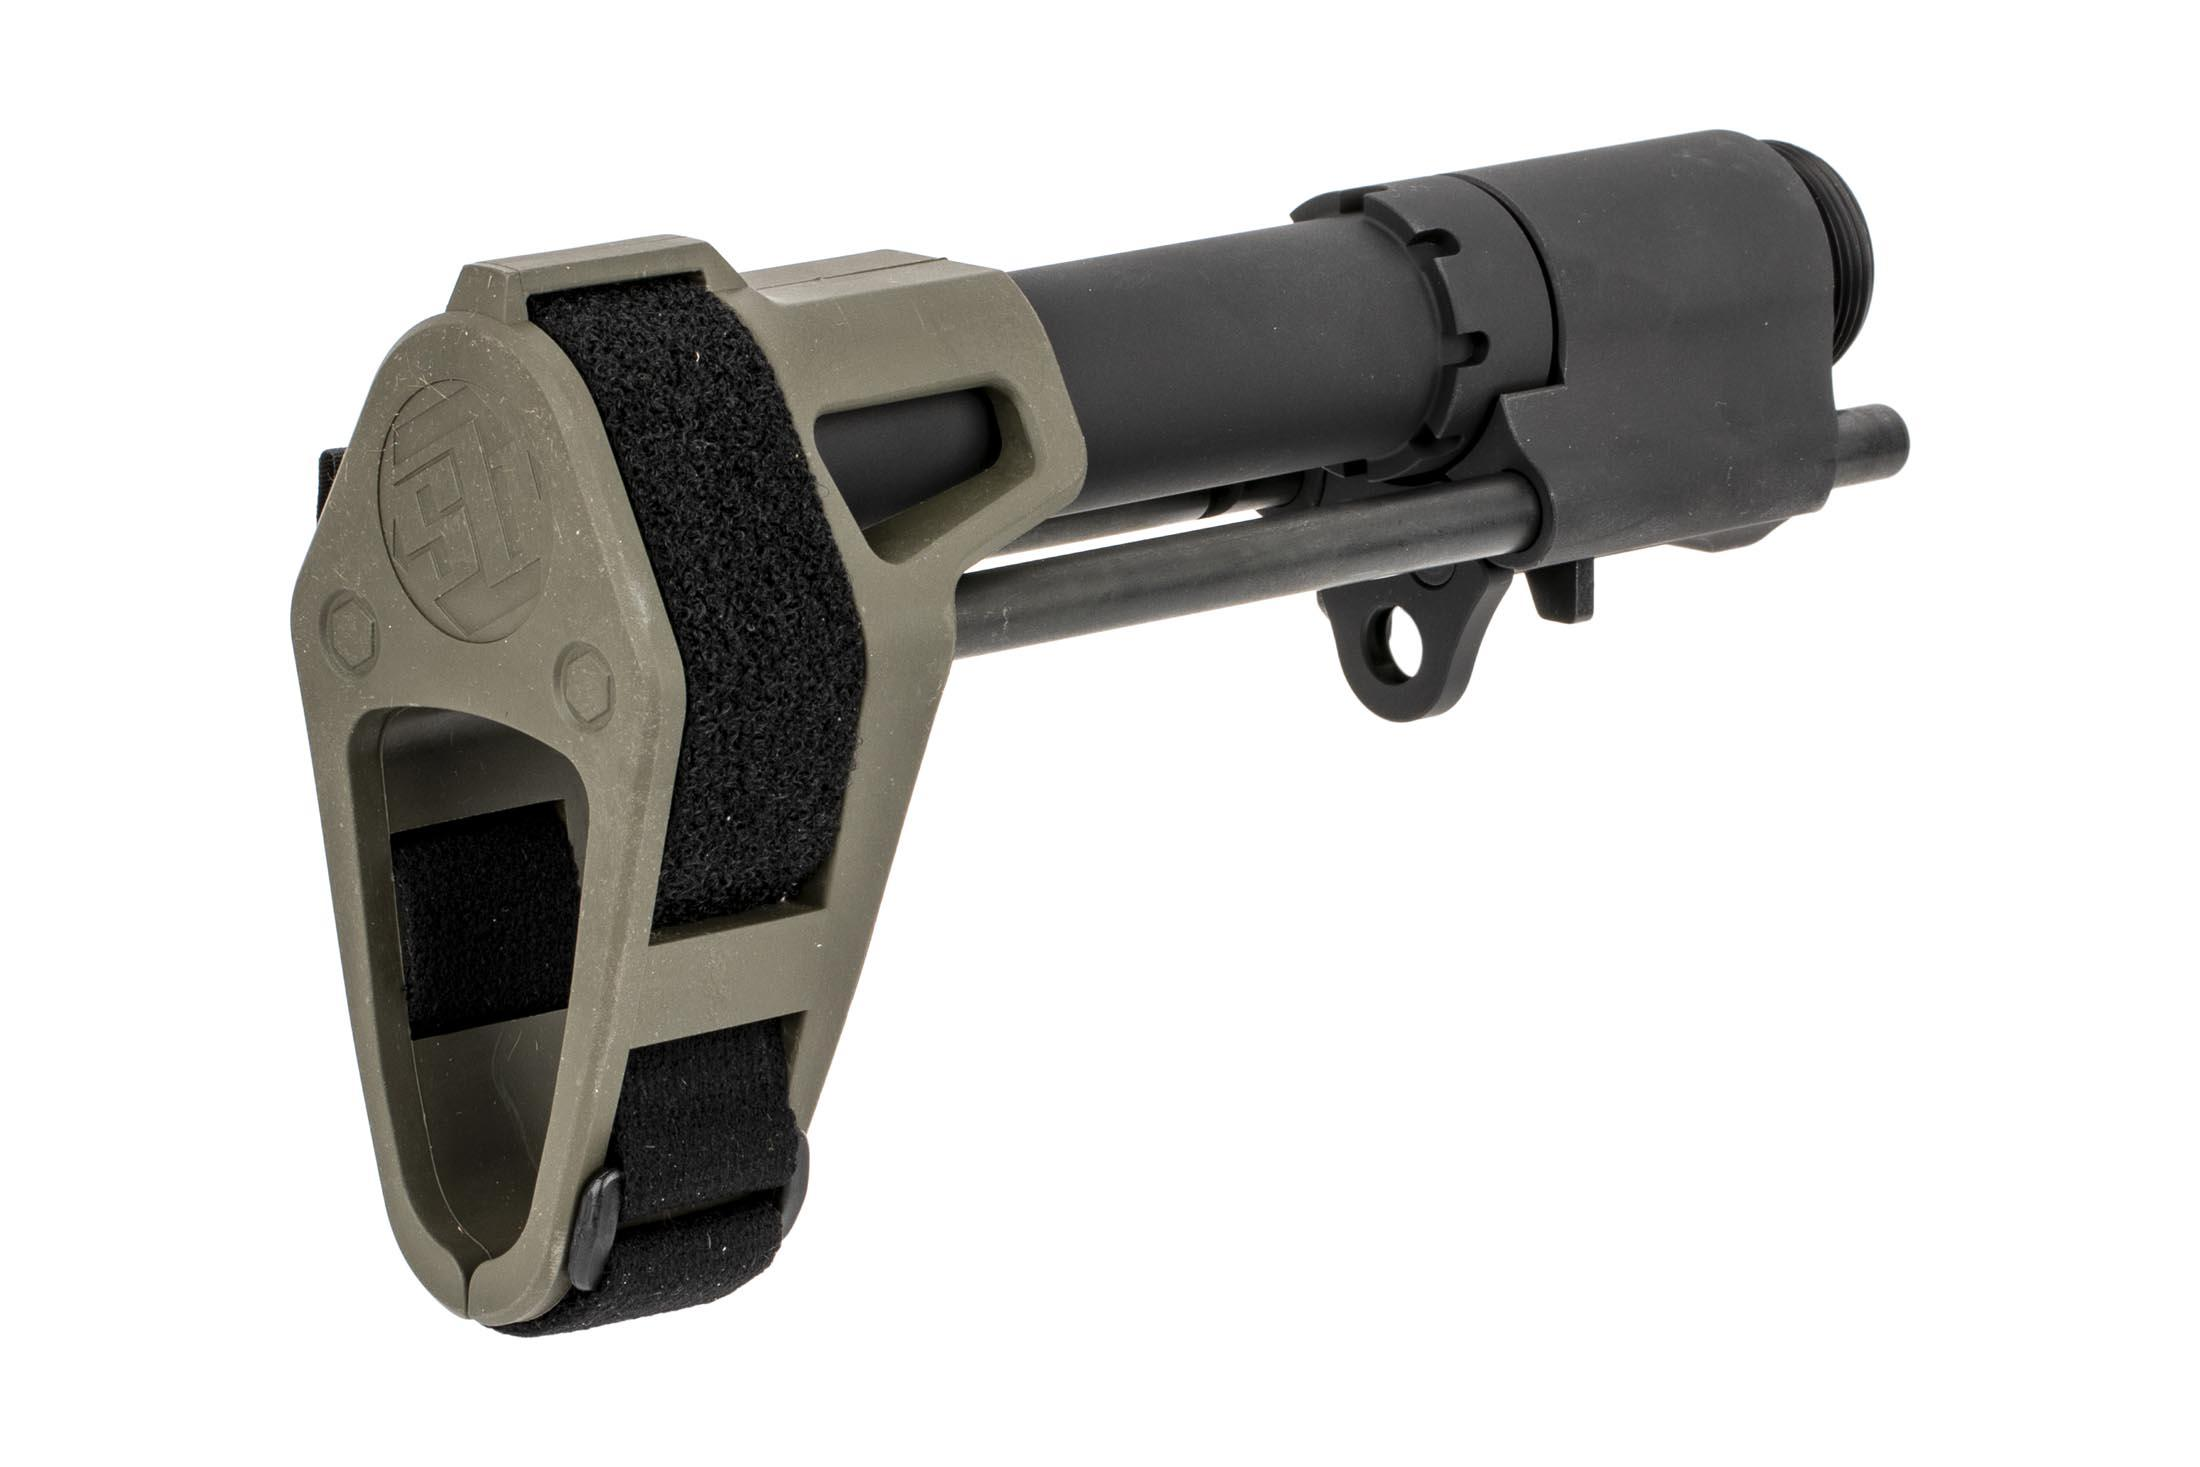 The OD Green SB Tactical SBPDW stabilizing brace comes with the 1 inch arm strap